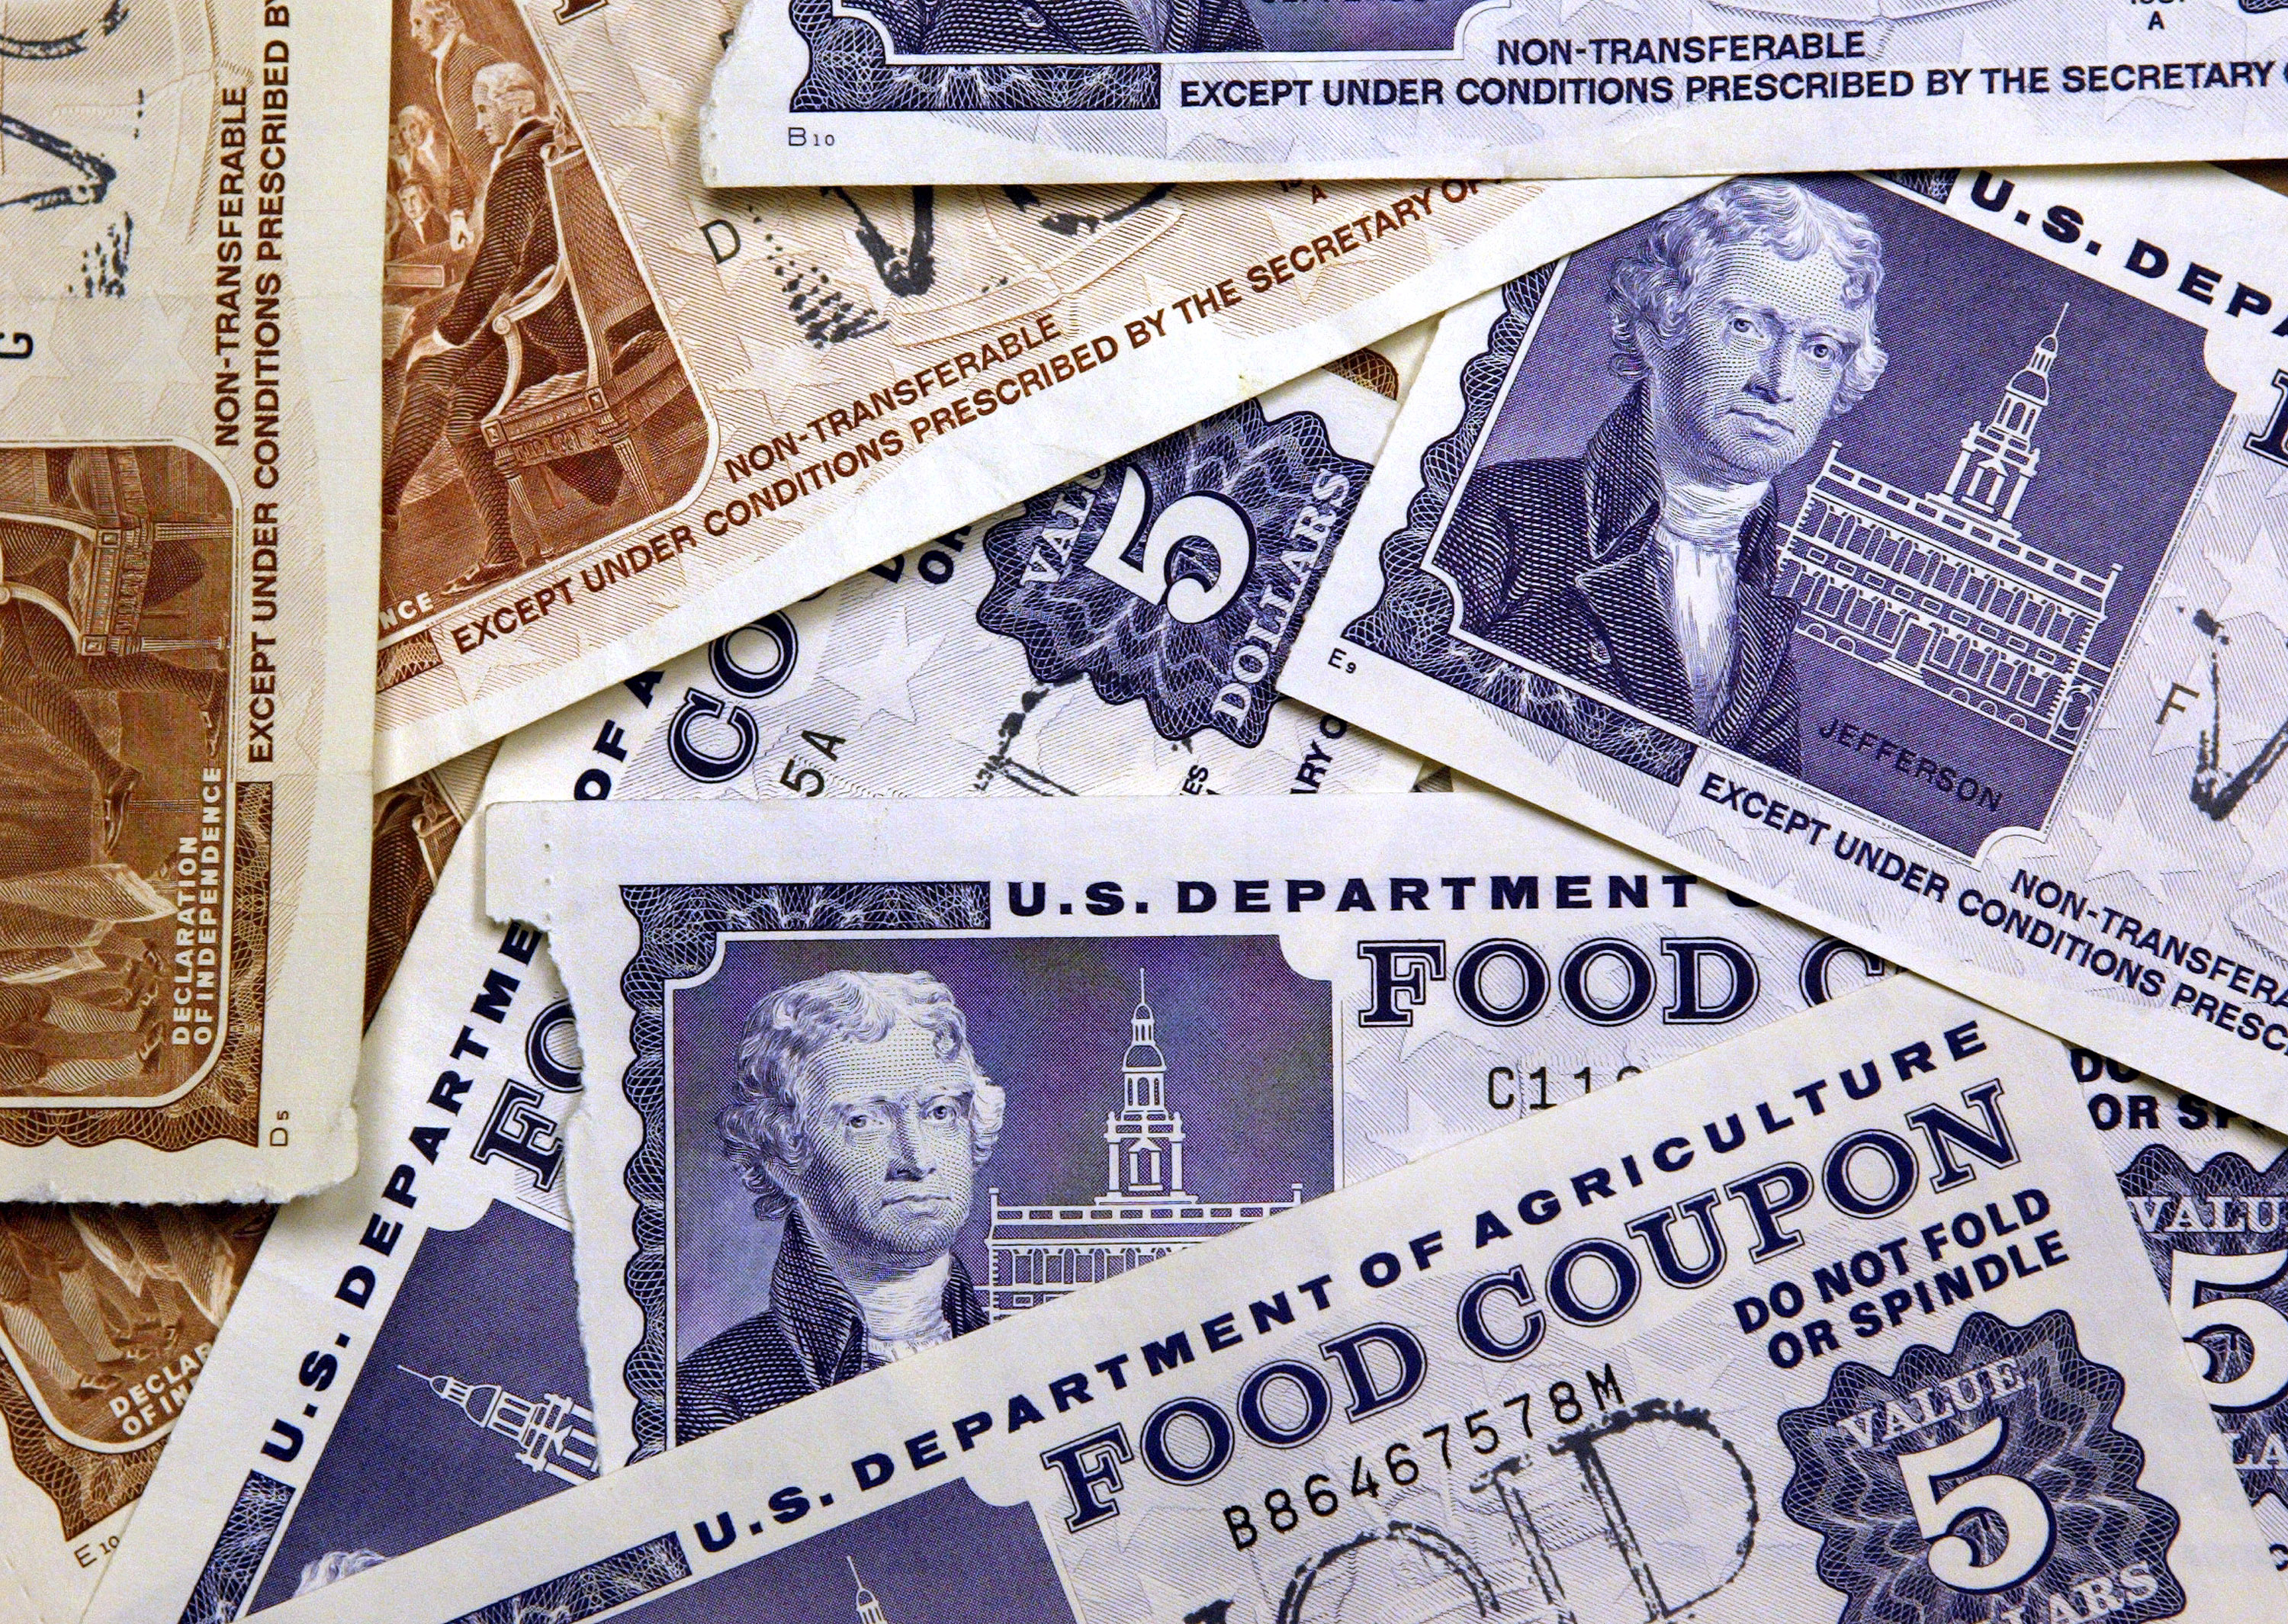 SKOKIE, IL - JUNE 24: Older, traditional food stamps are displayed June 24, 2004 at an Illinois Department of Human Services office in Skokie, Illinois. Agriculture Secretary Ann M. Veneman has announced all 50 states and the U.S. territories now provide Food Stamp Program benefits with EBT (Electronic Benefits Transfer) cards instead of the traditional paper coupon stamps. (Photo by Tim Boyle/Getty Images)